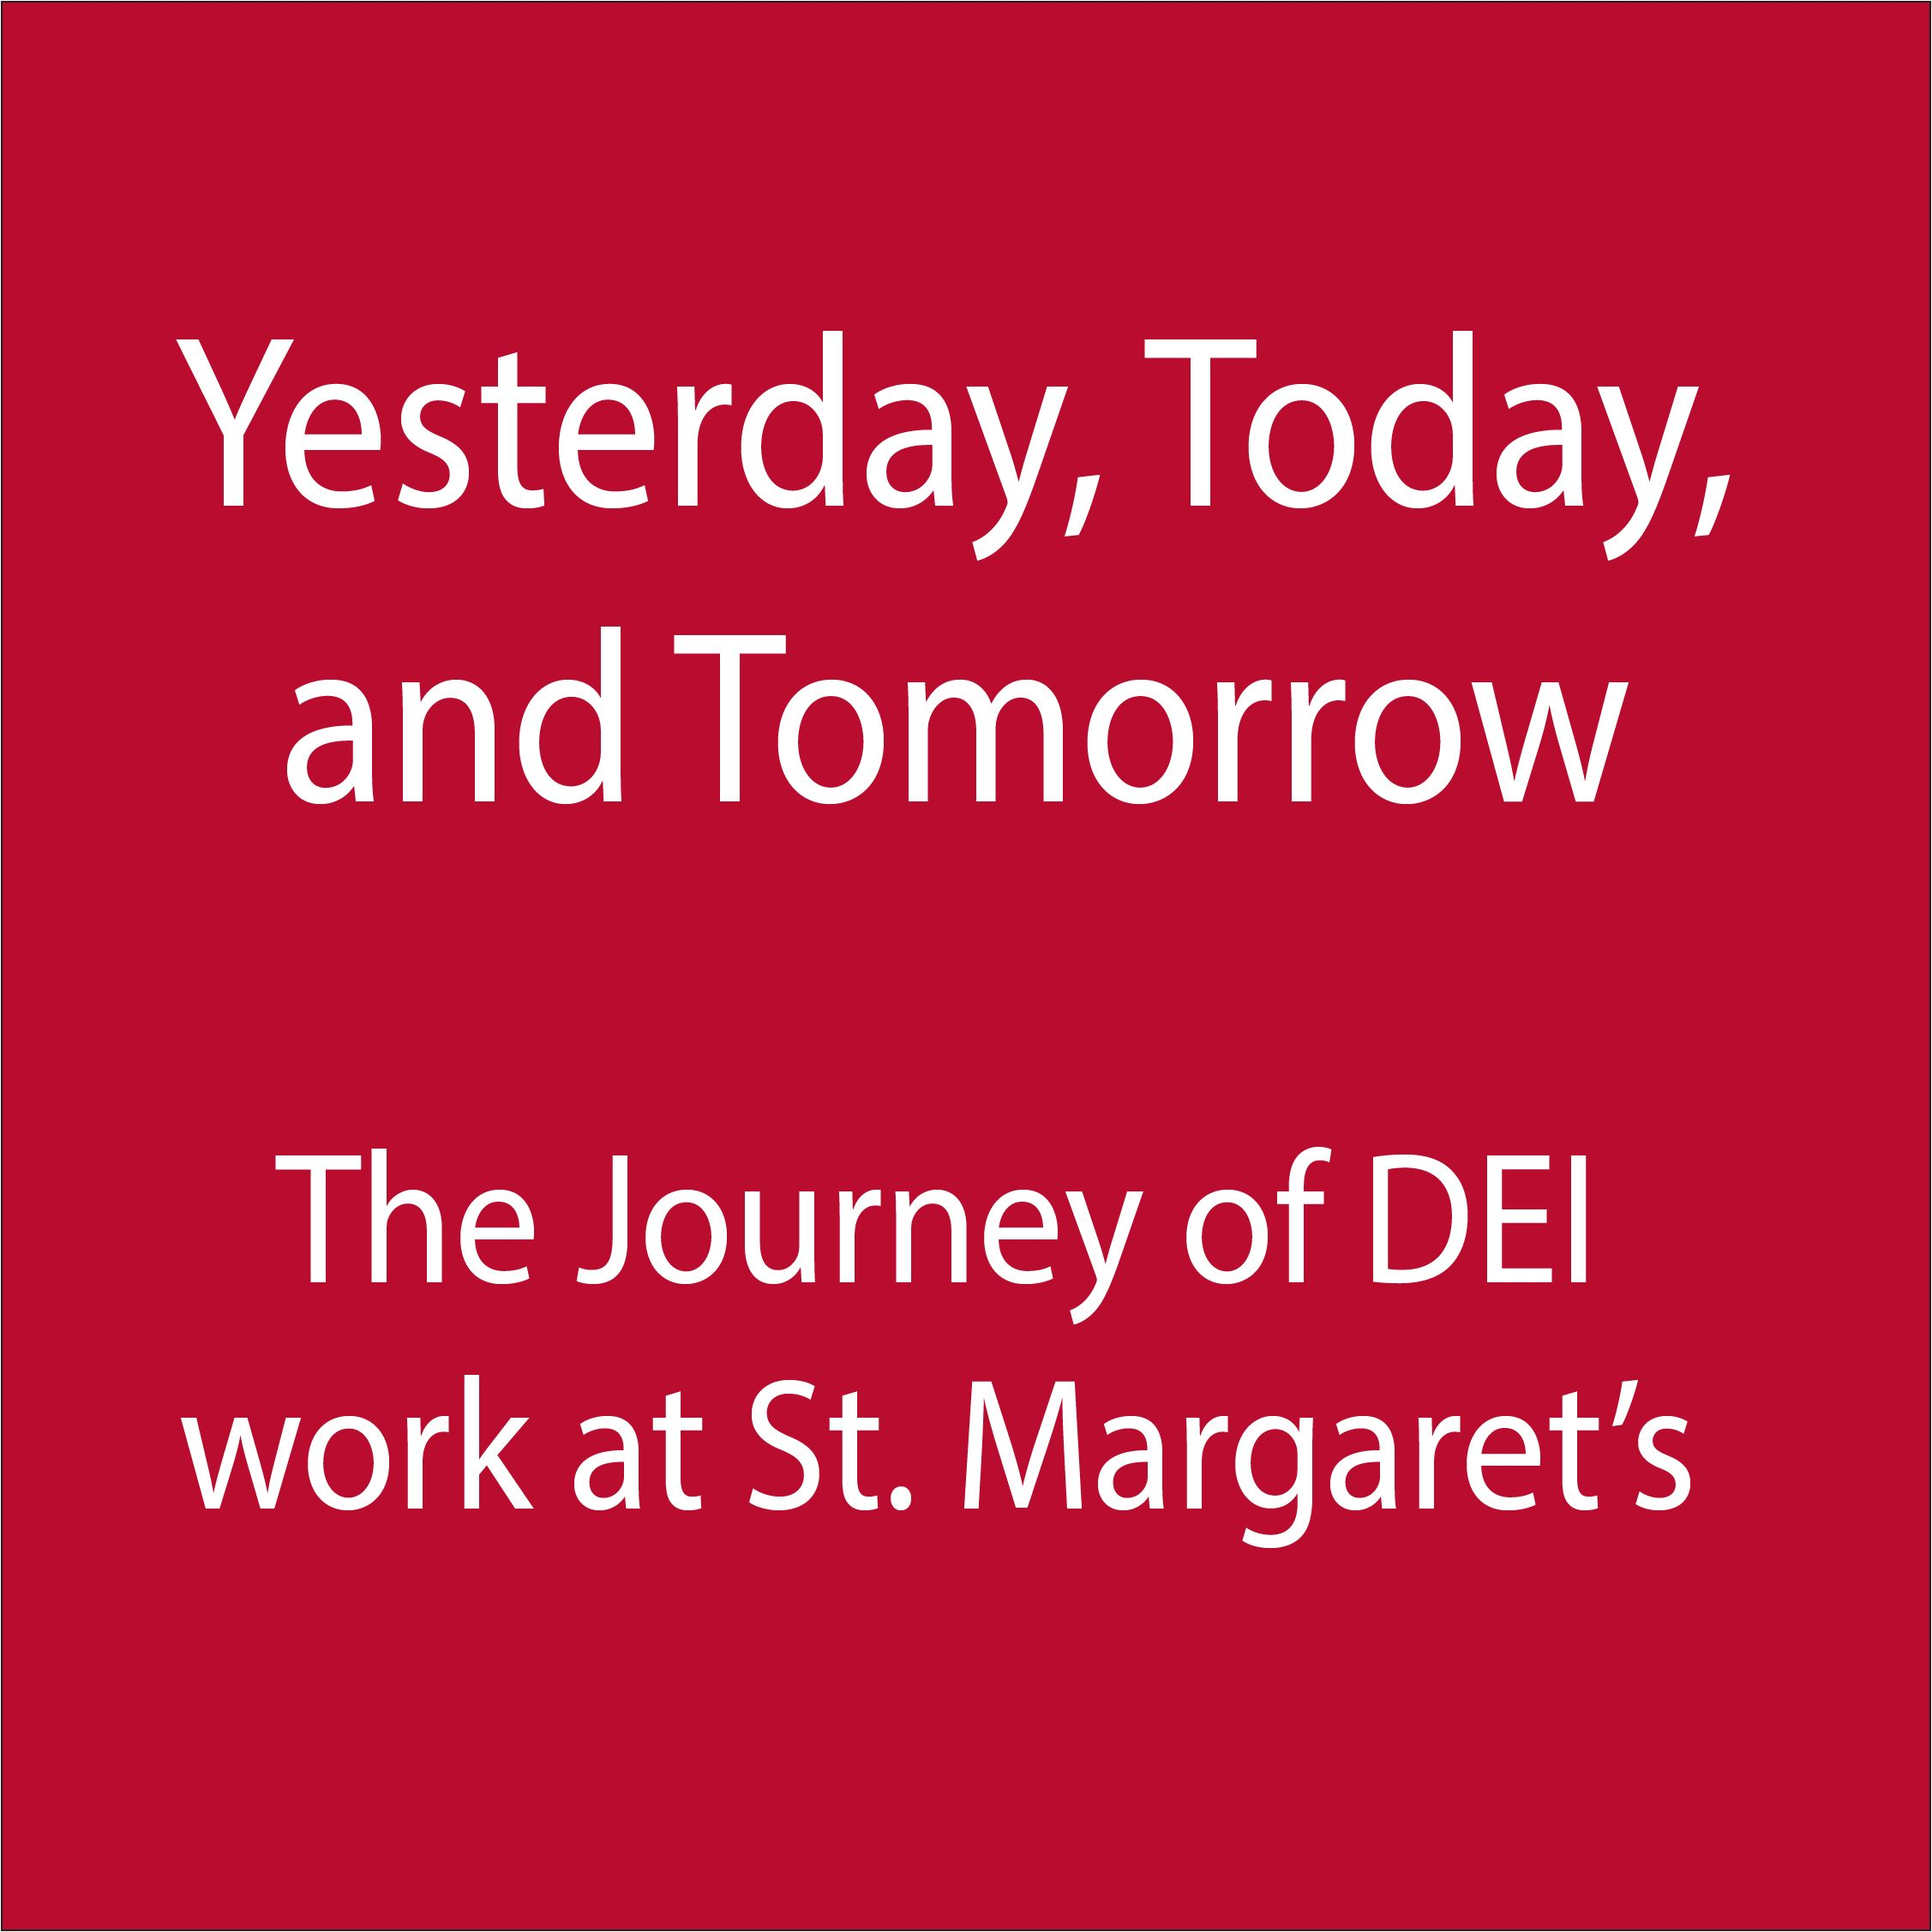 The Journey of DEI Work at St. Margaret's